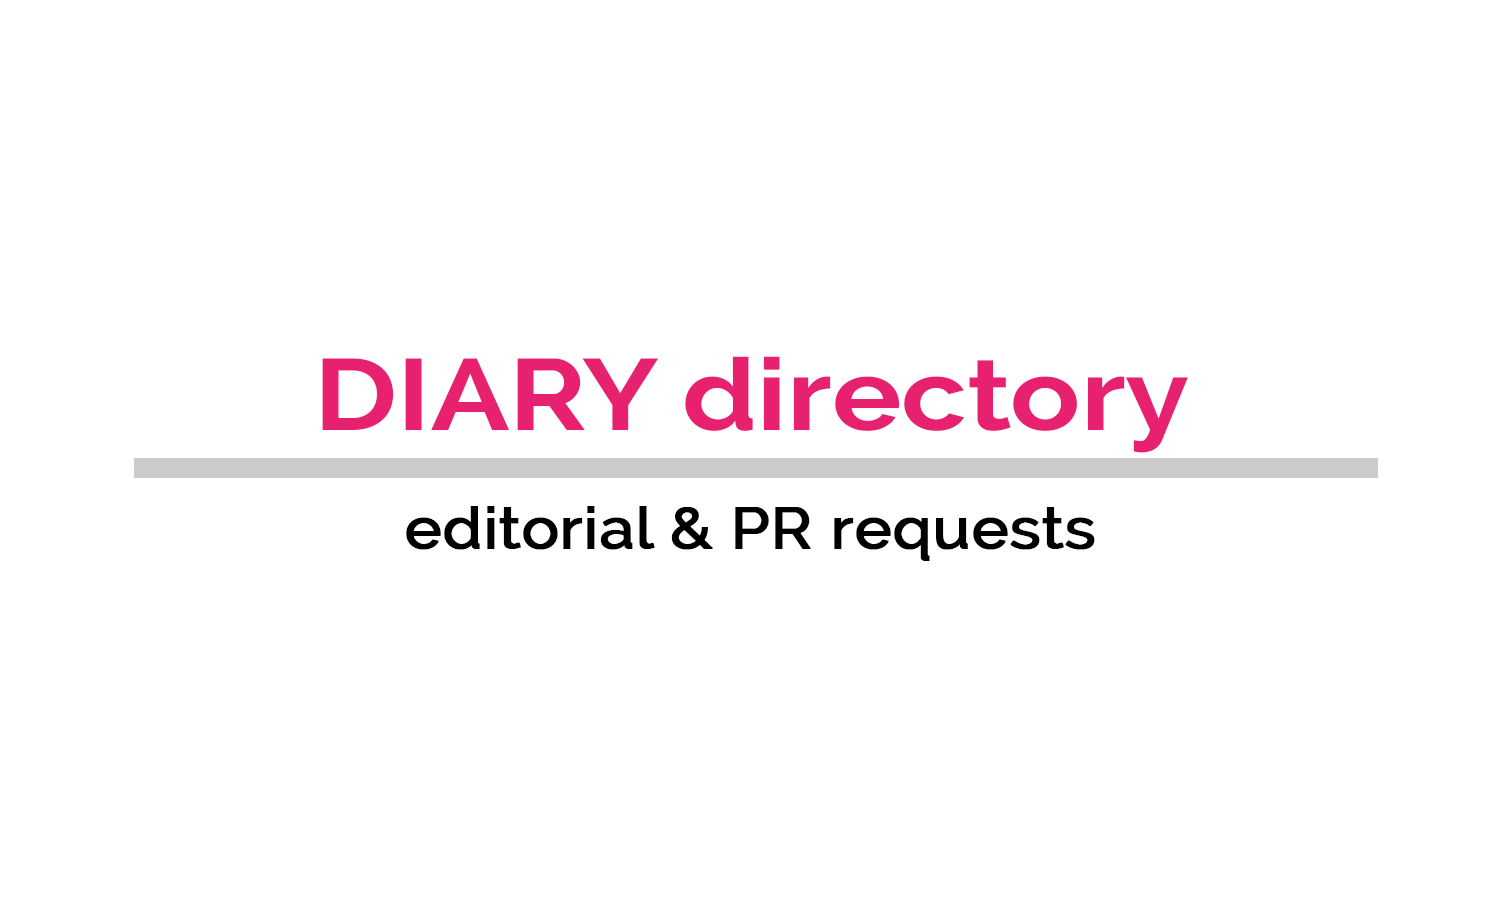 DIARY directory's Editorial & PR Requests